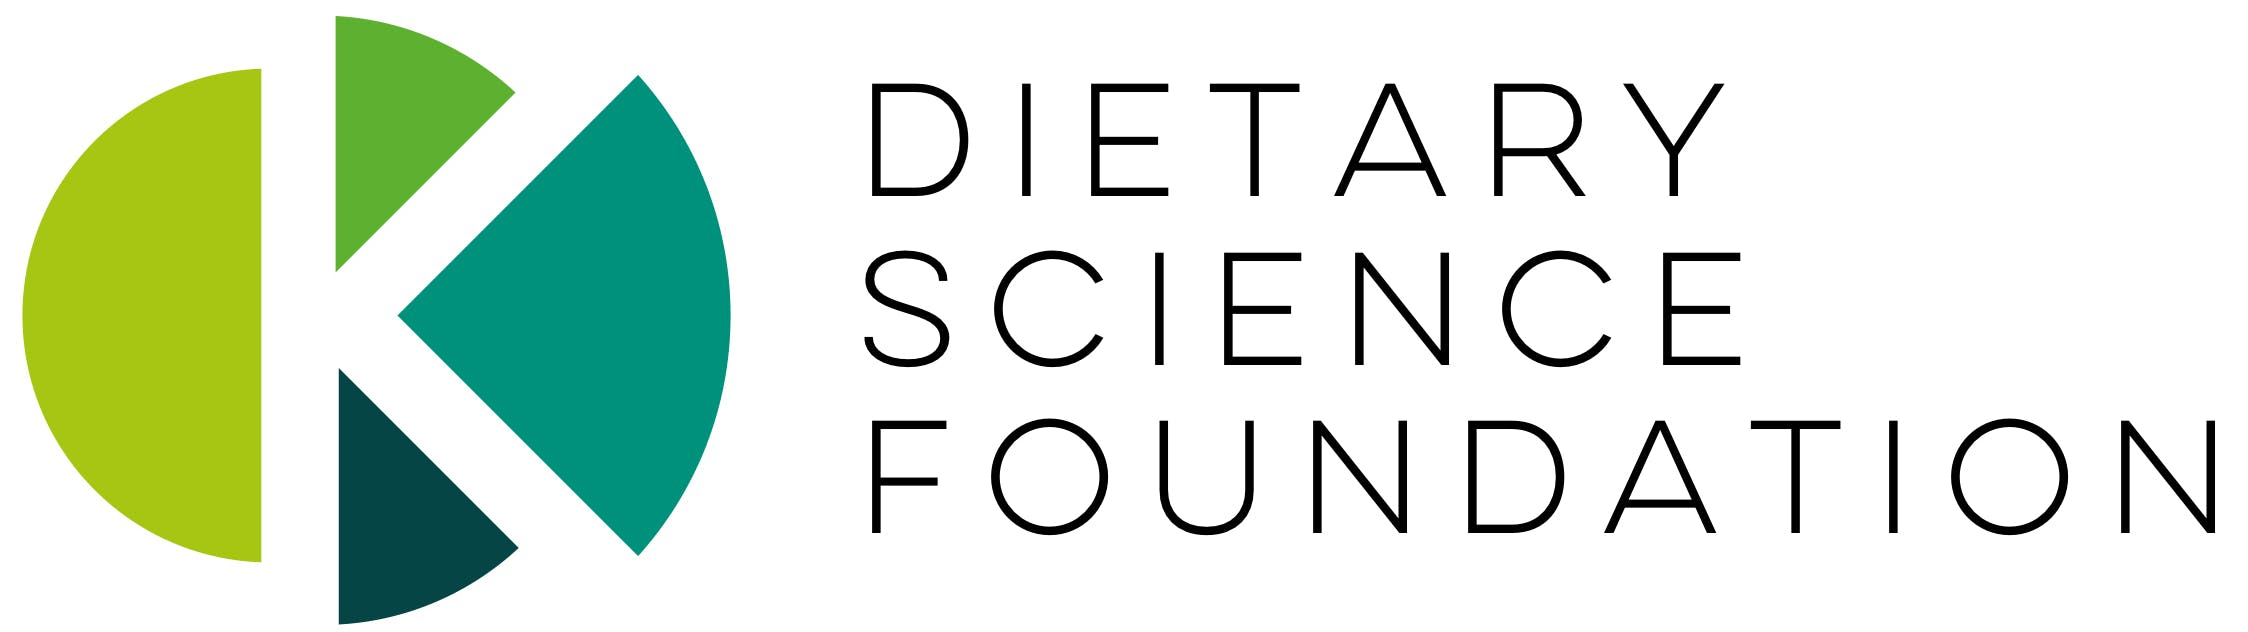 The Dietary Science Foundation, a non-profit for high-quality dietary research